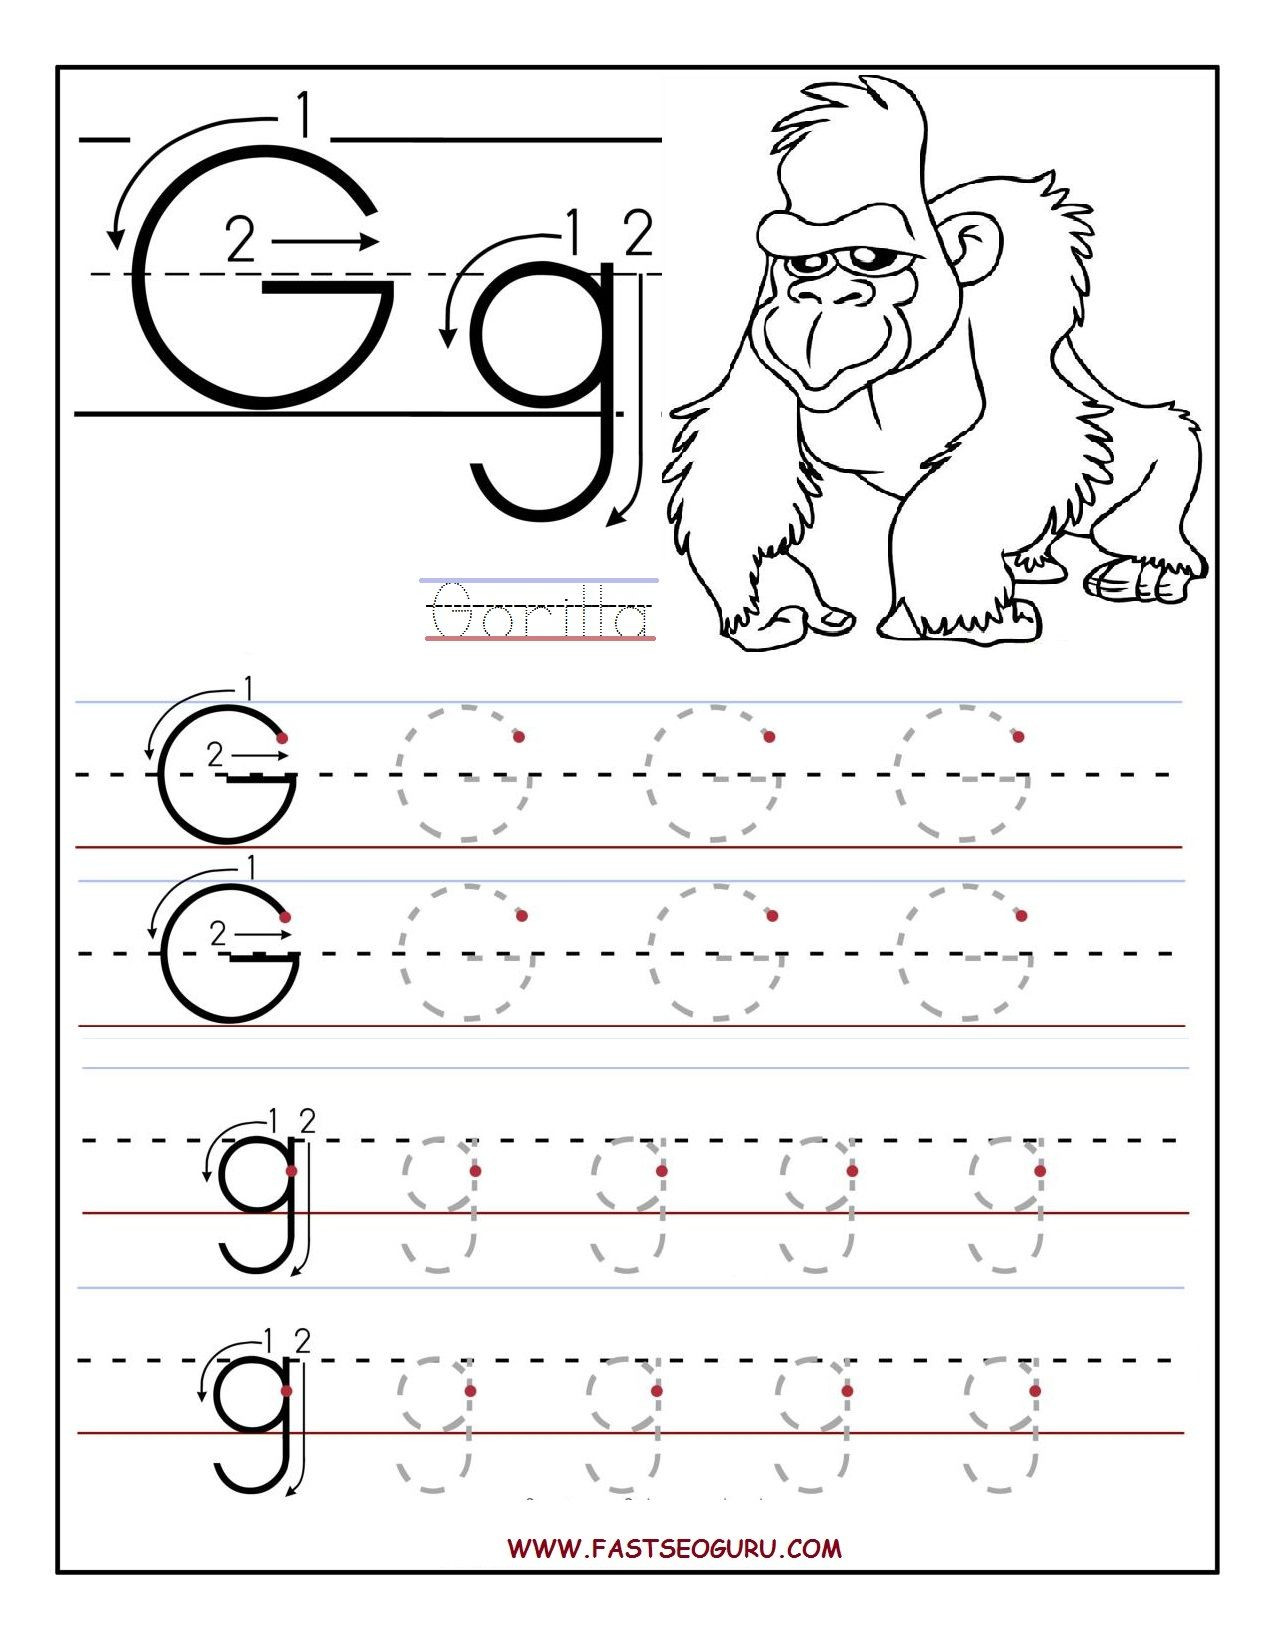 Letter G Tracing Worksheets Preschool Printable Letter G Tracing Worksheets for Preschool